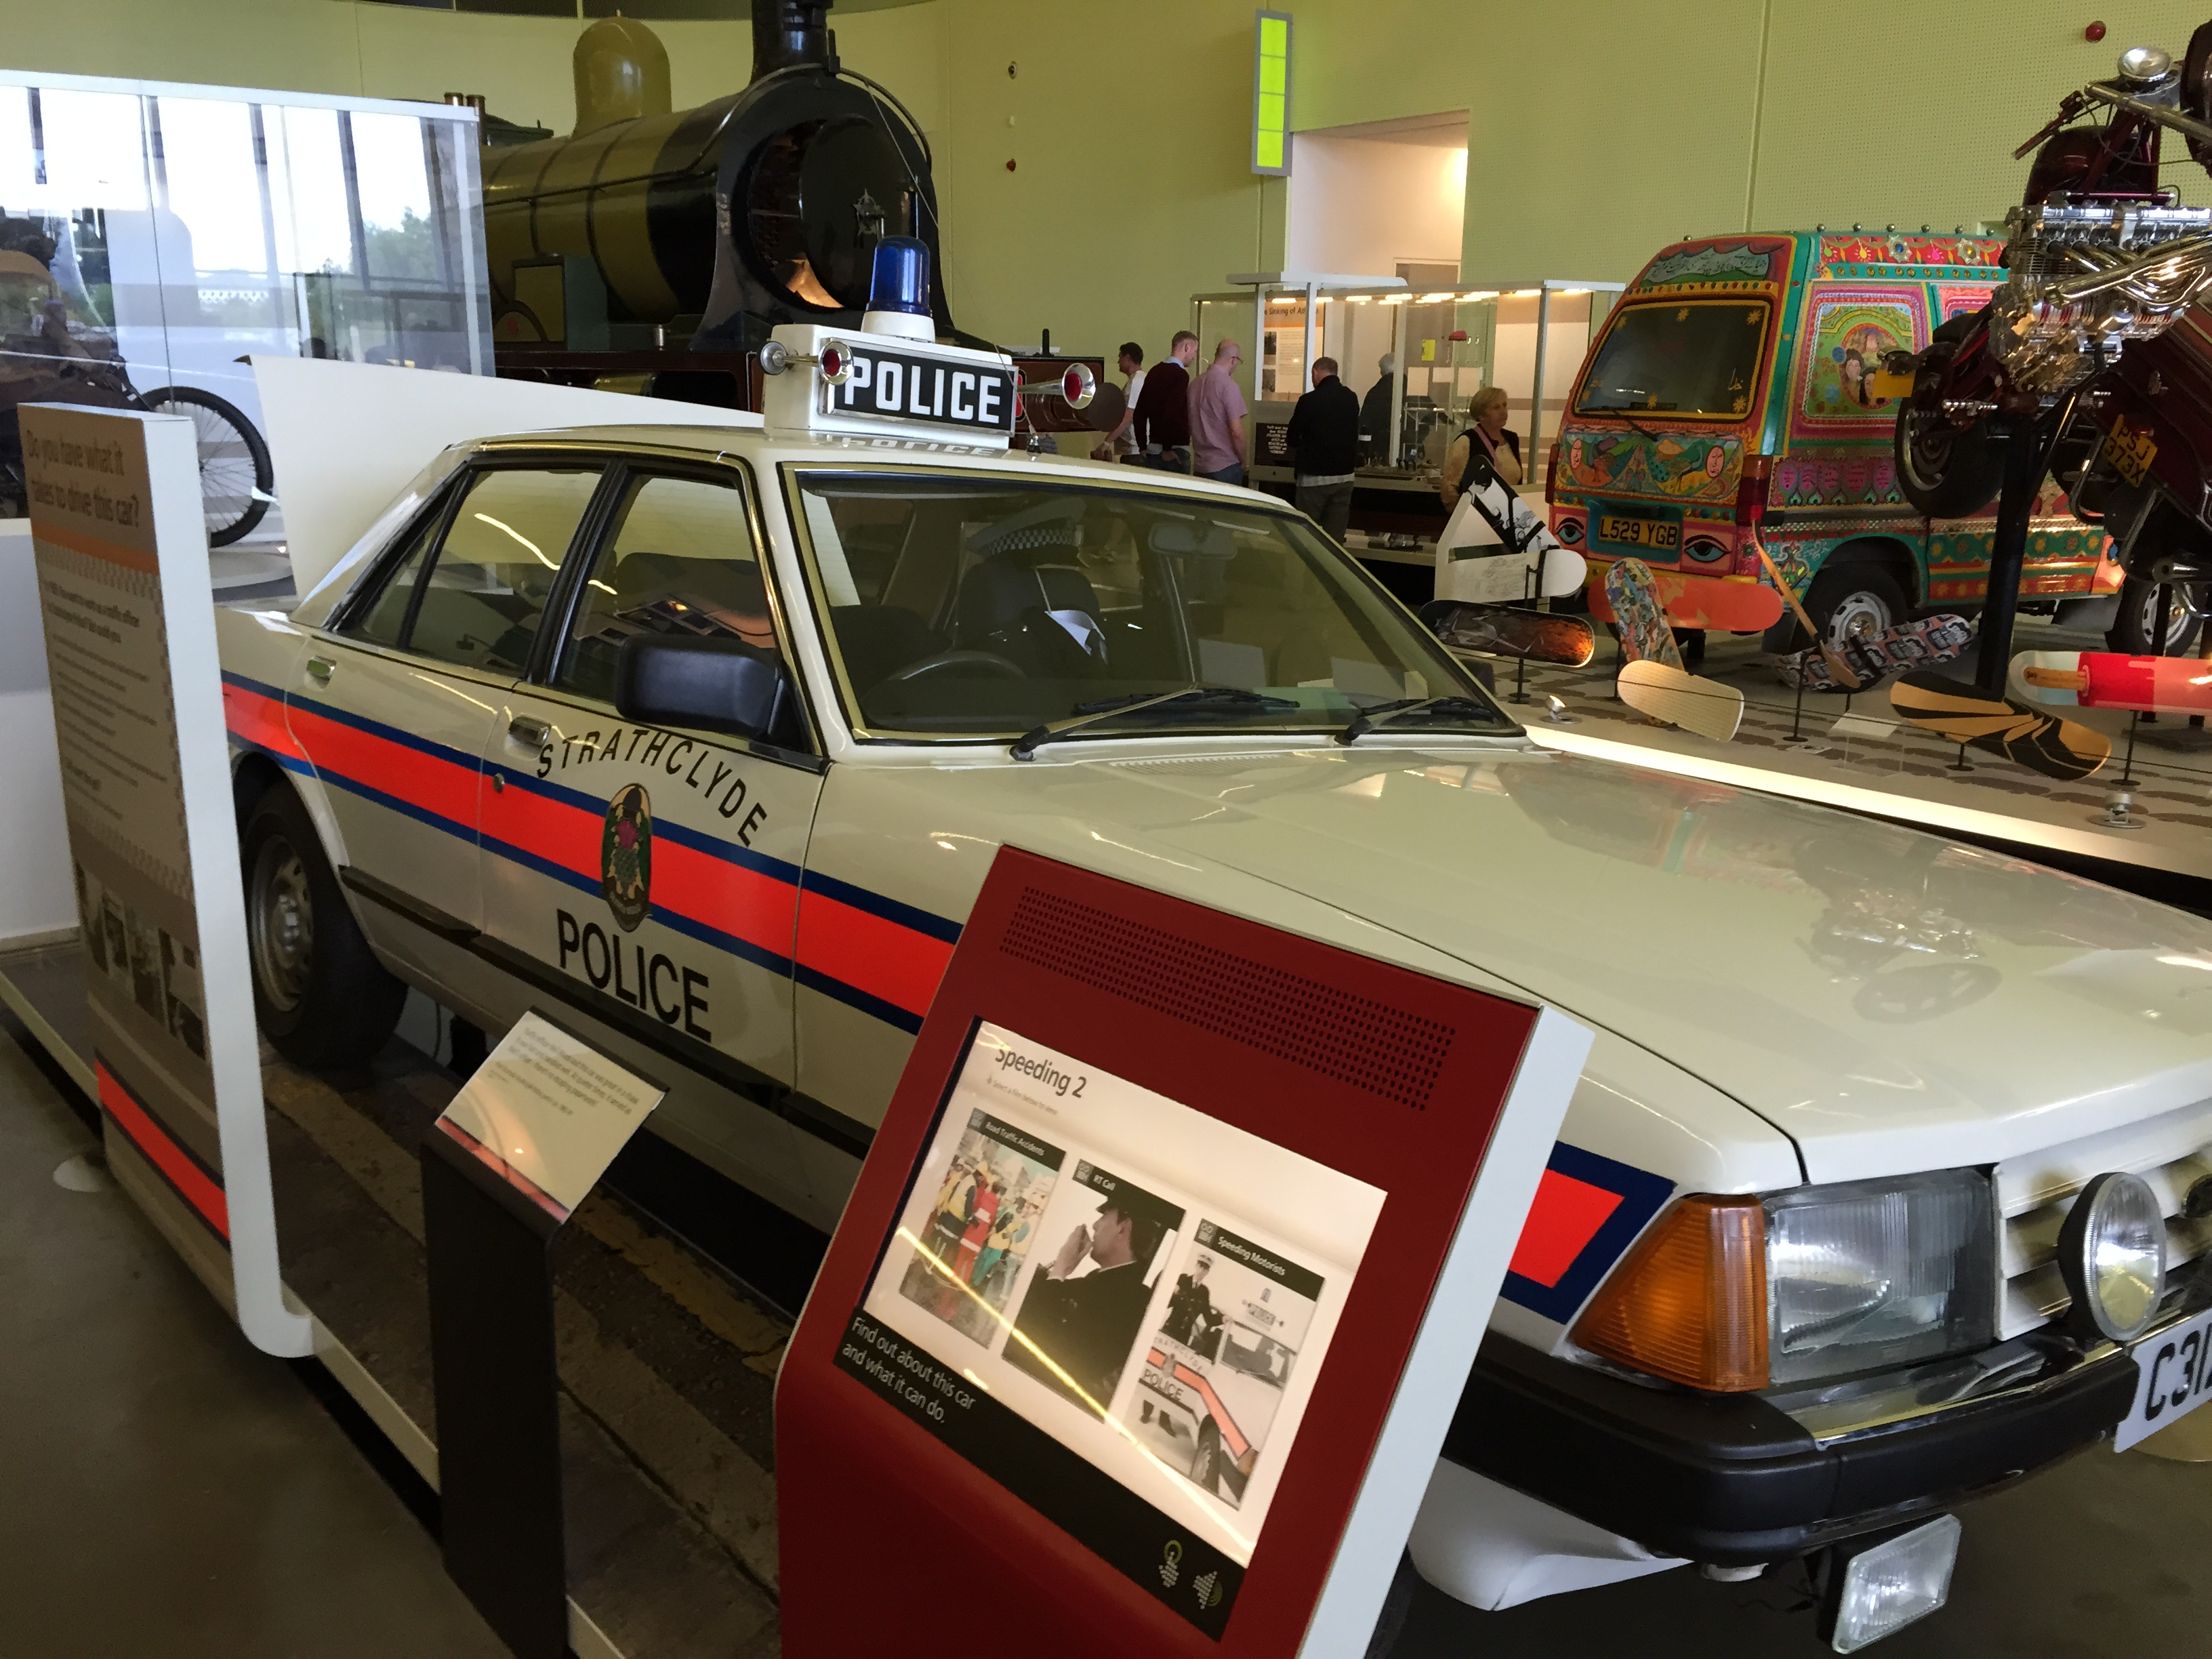 Figure 2: A police car exhibit, at the Riverside Museum of Transport and Travel in Glasgow. Photo by author.